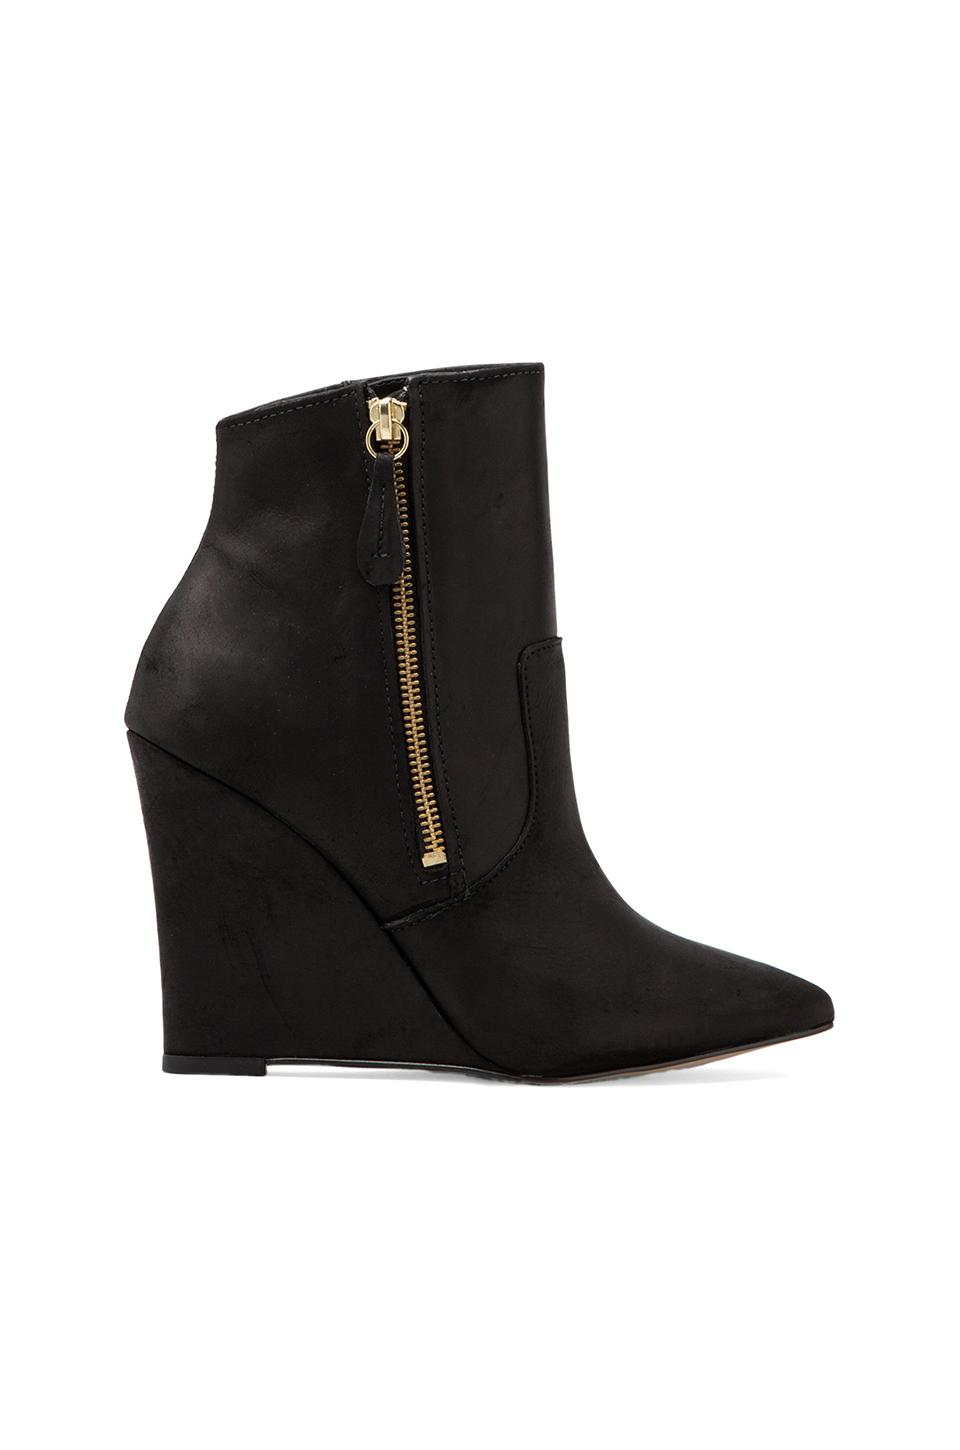 Steven Meter Bootie in Black